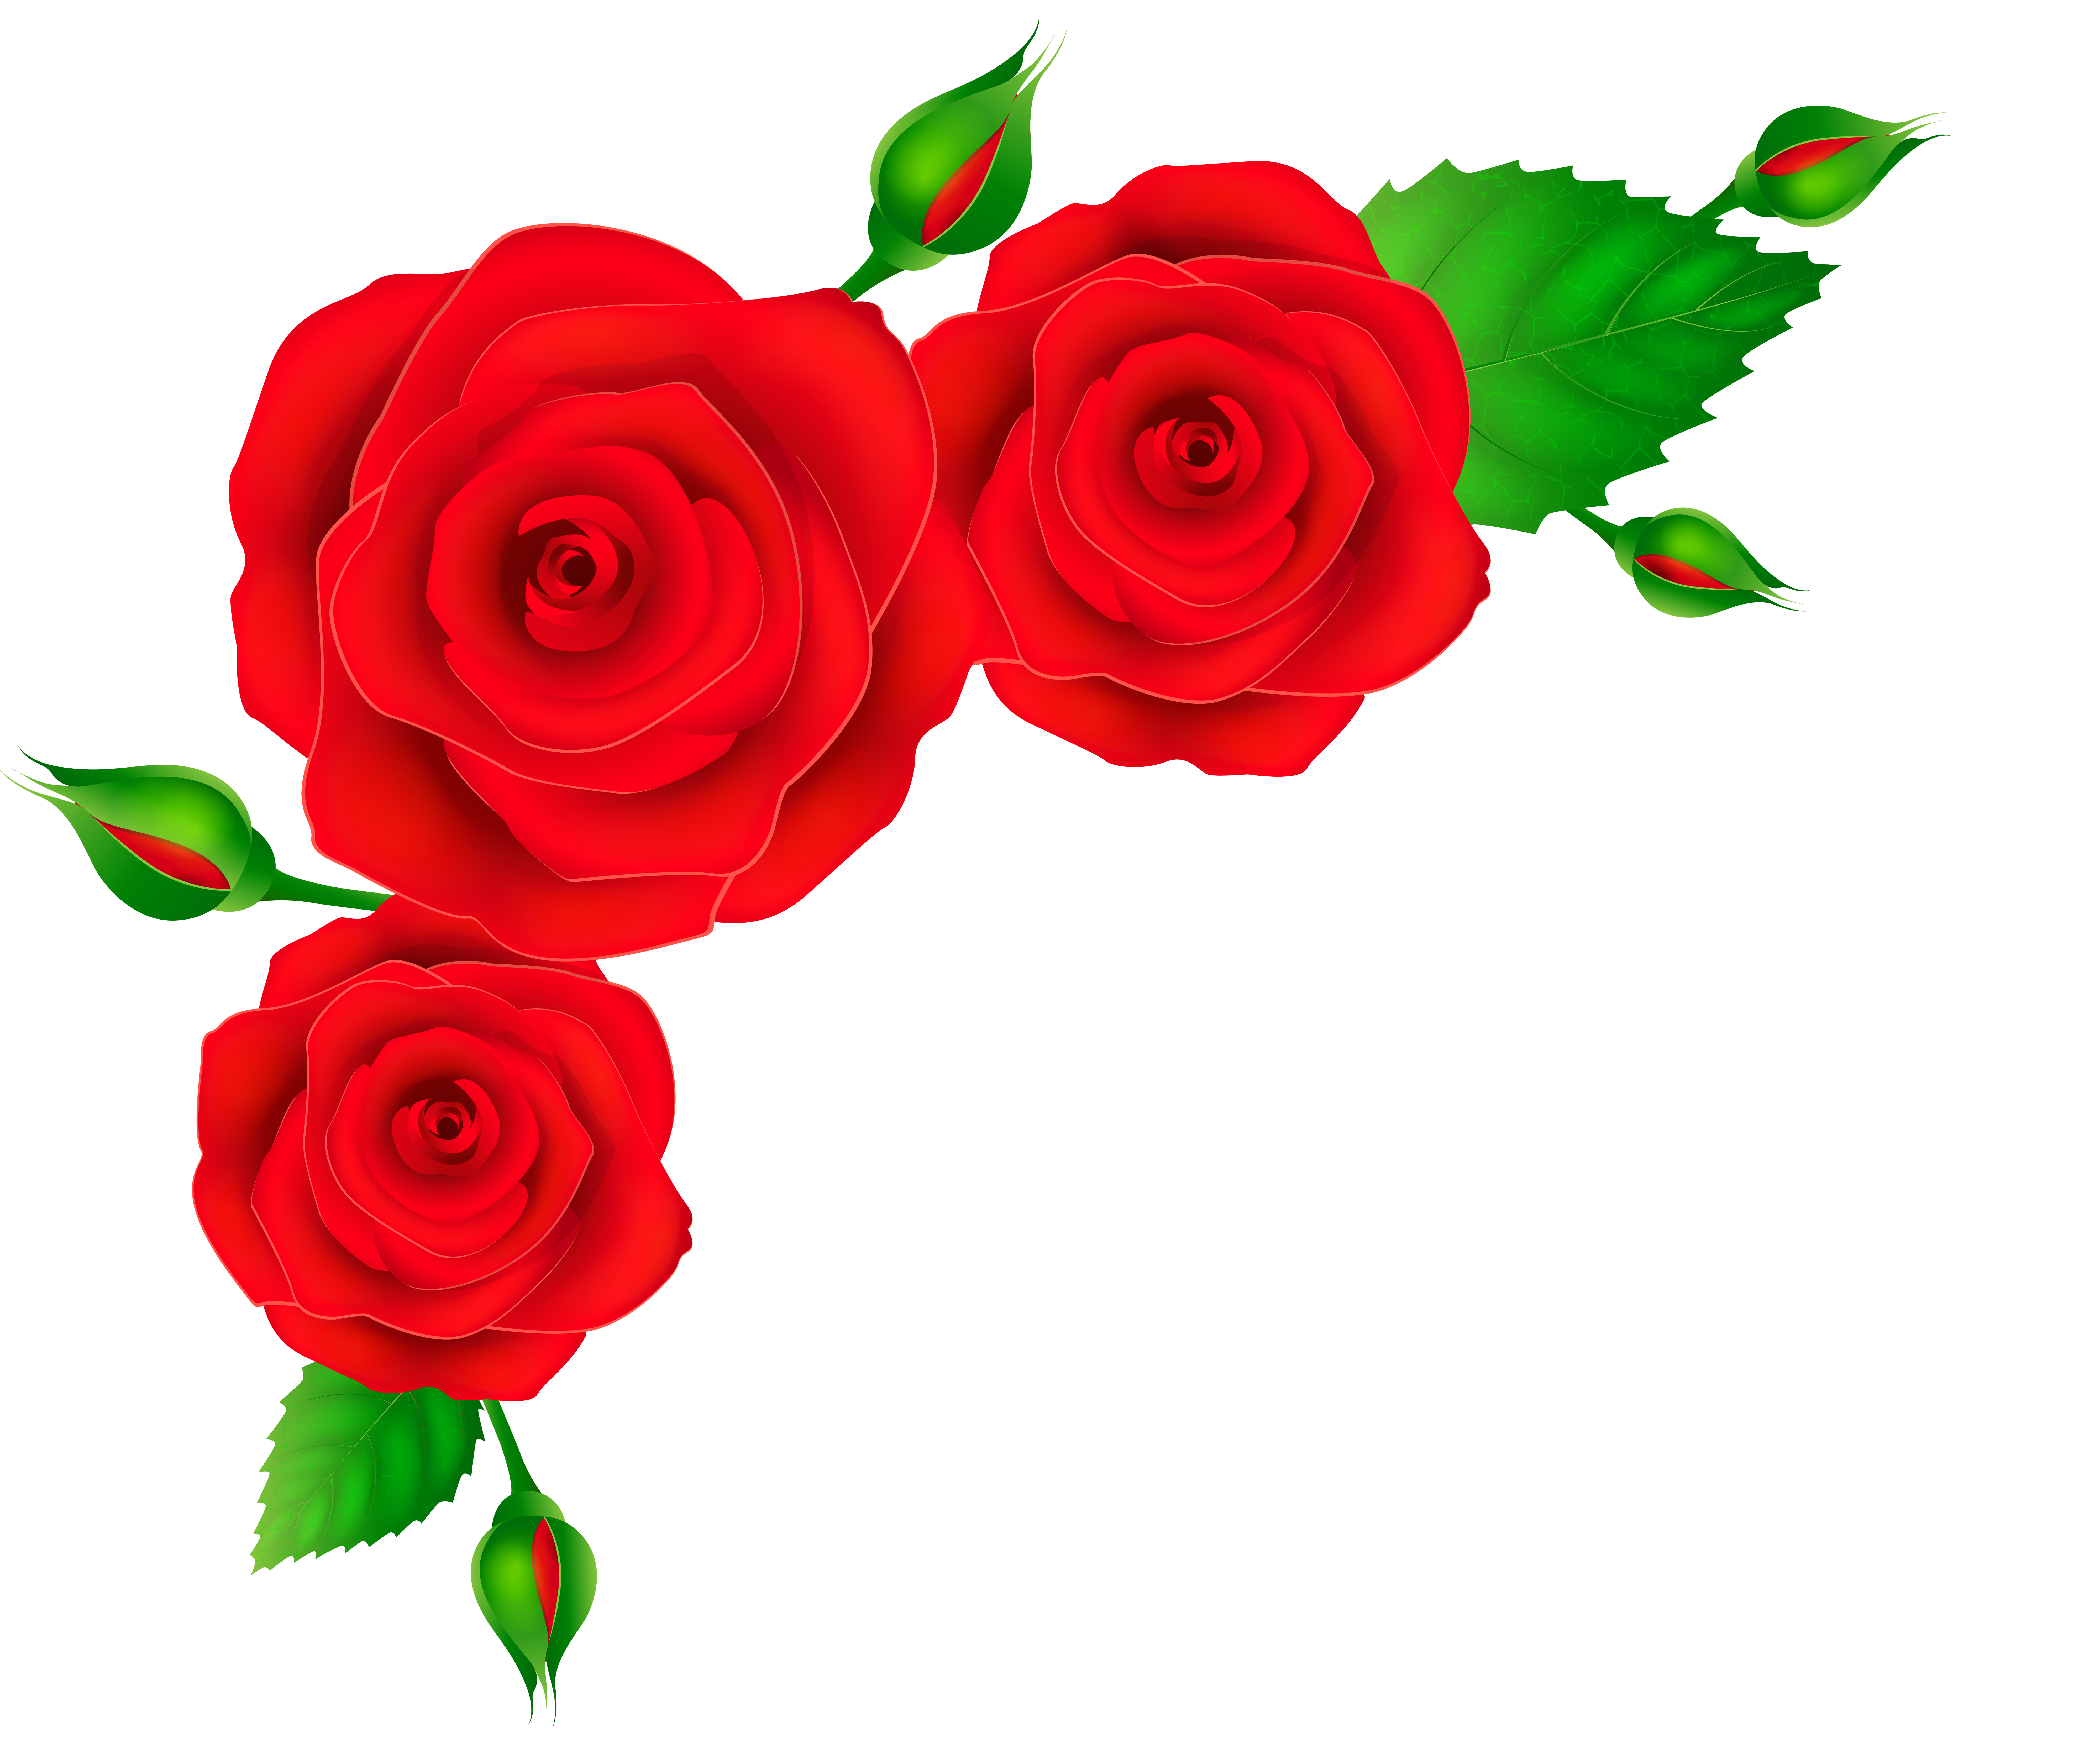 Red Rose Clipart At Getdrawings Com Free For Personal Use Red Rose